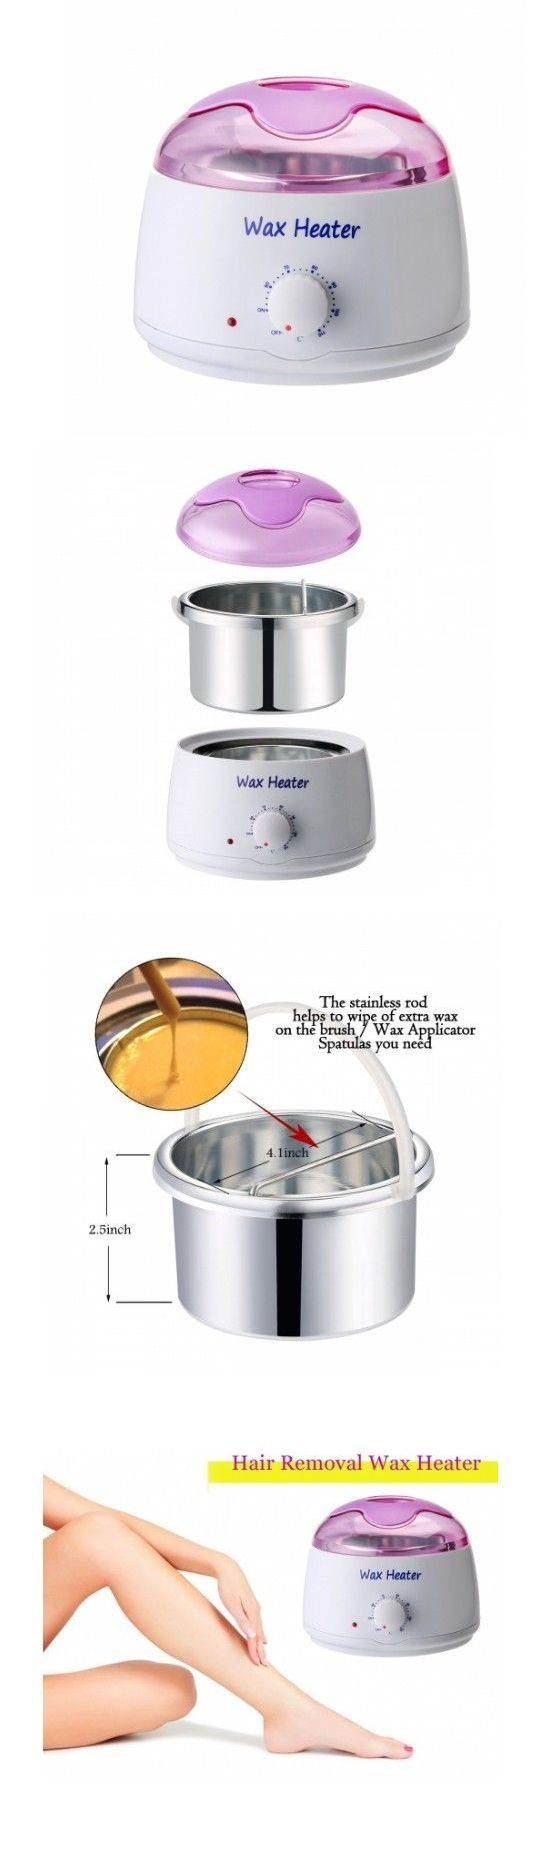 Professional Waxing Warmers: Makartt Wax Warmer Electric Hair Removal Wax Melting Pot Free Shipping -> BUY IT NOW ONLY: $36.99 on eBay!